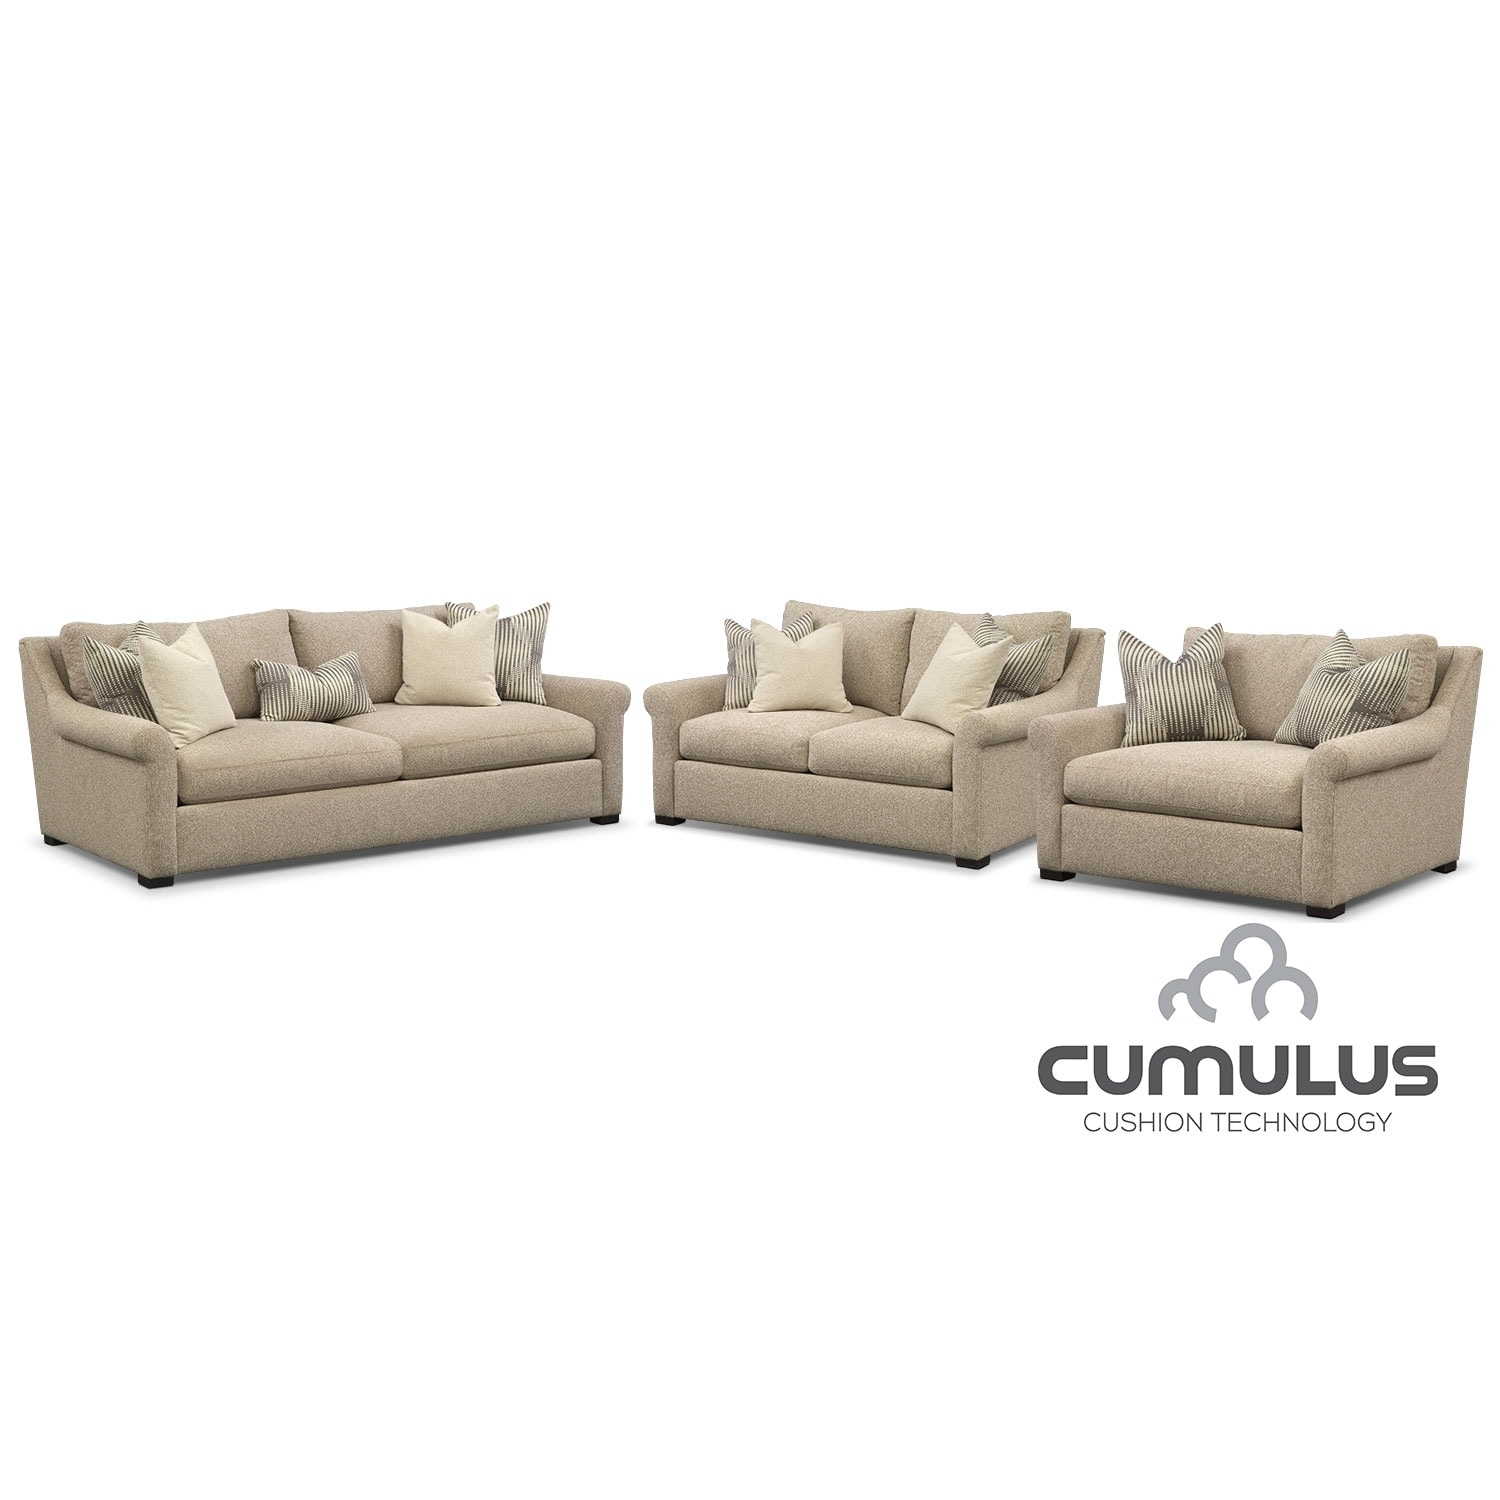 Living Room Furniture - Robertson Cumulus 3 Pc. Living Room Package